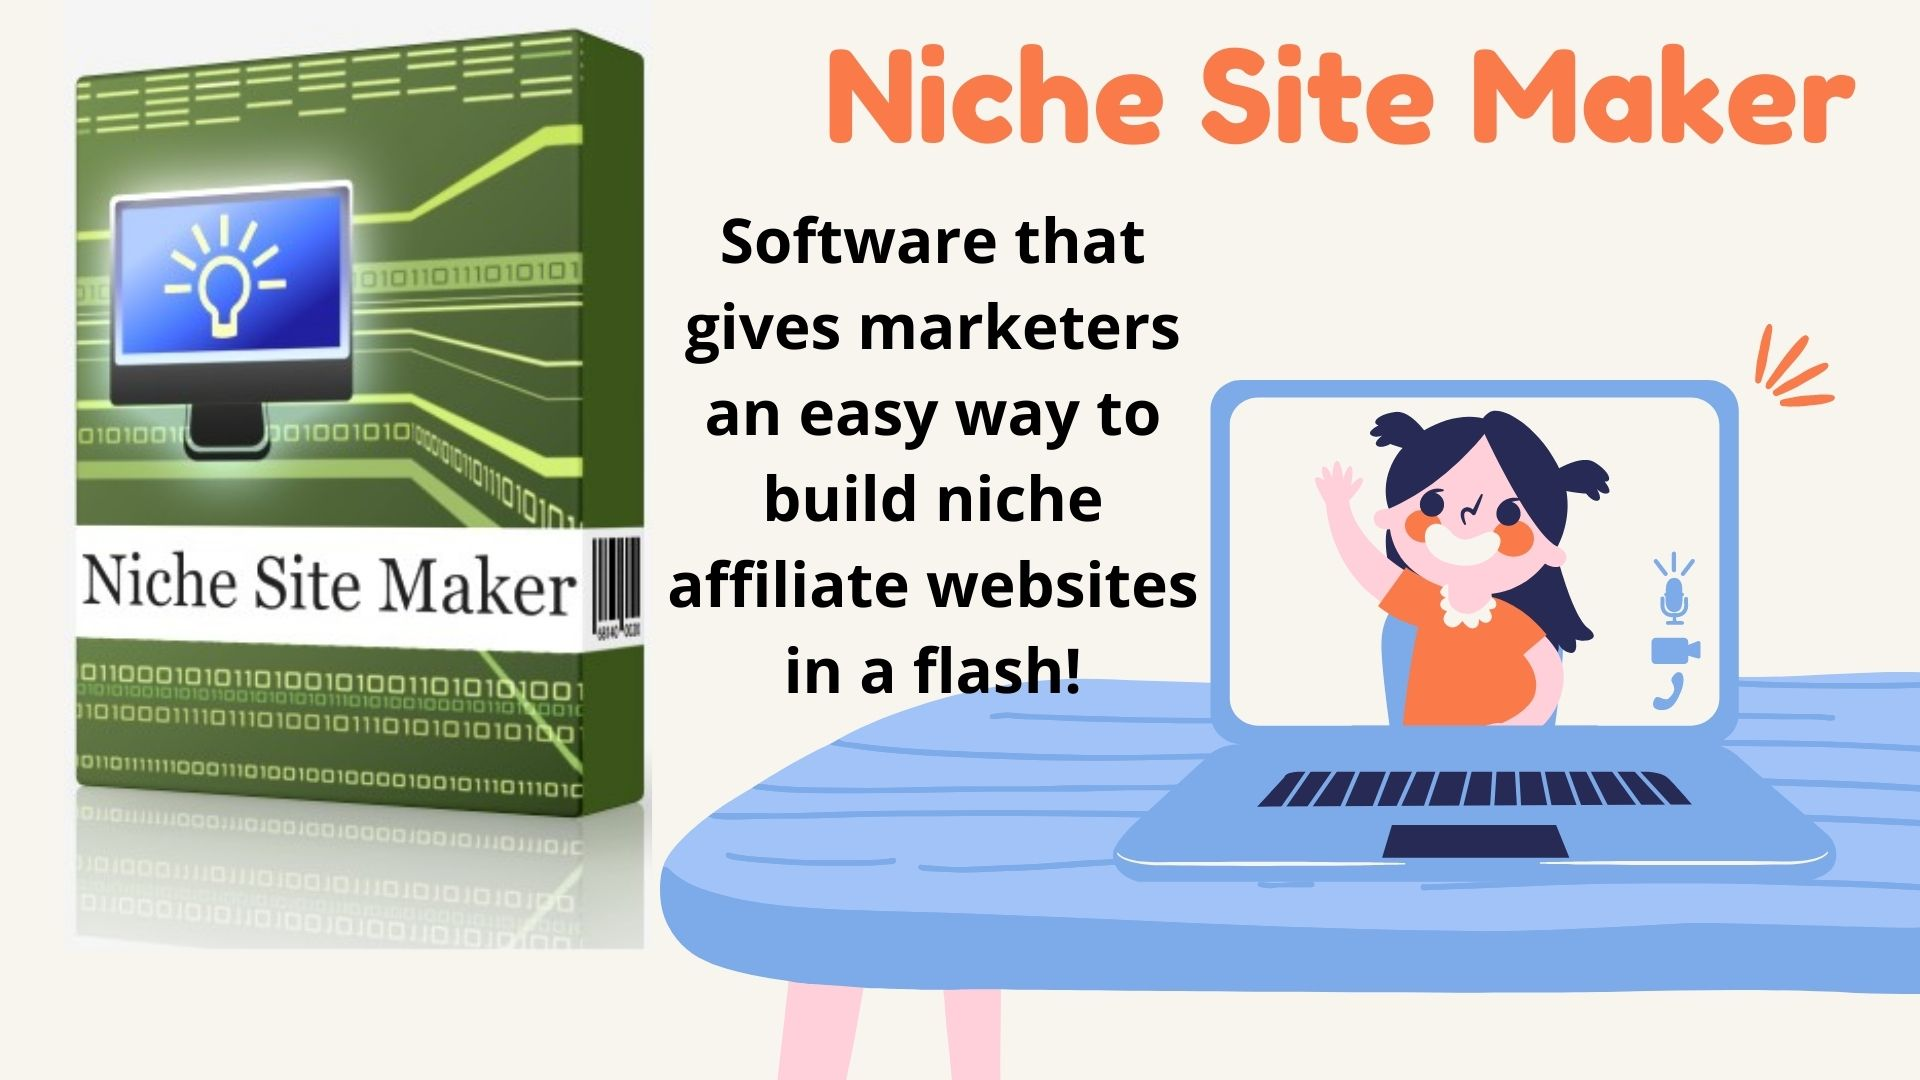 Niche Site Maker Software that gives marketers and easy way to build niche